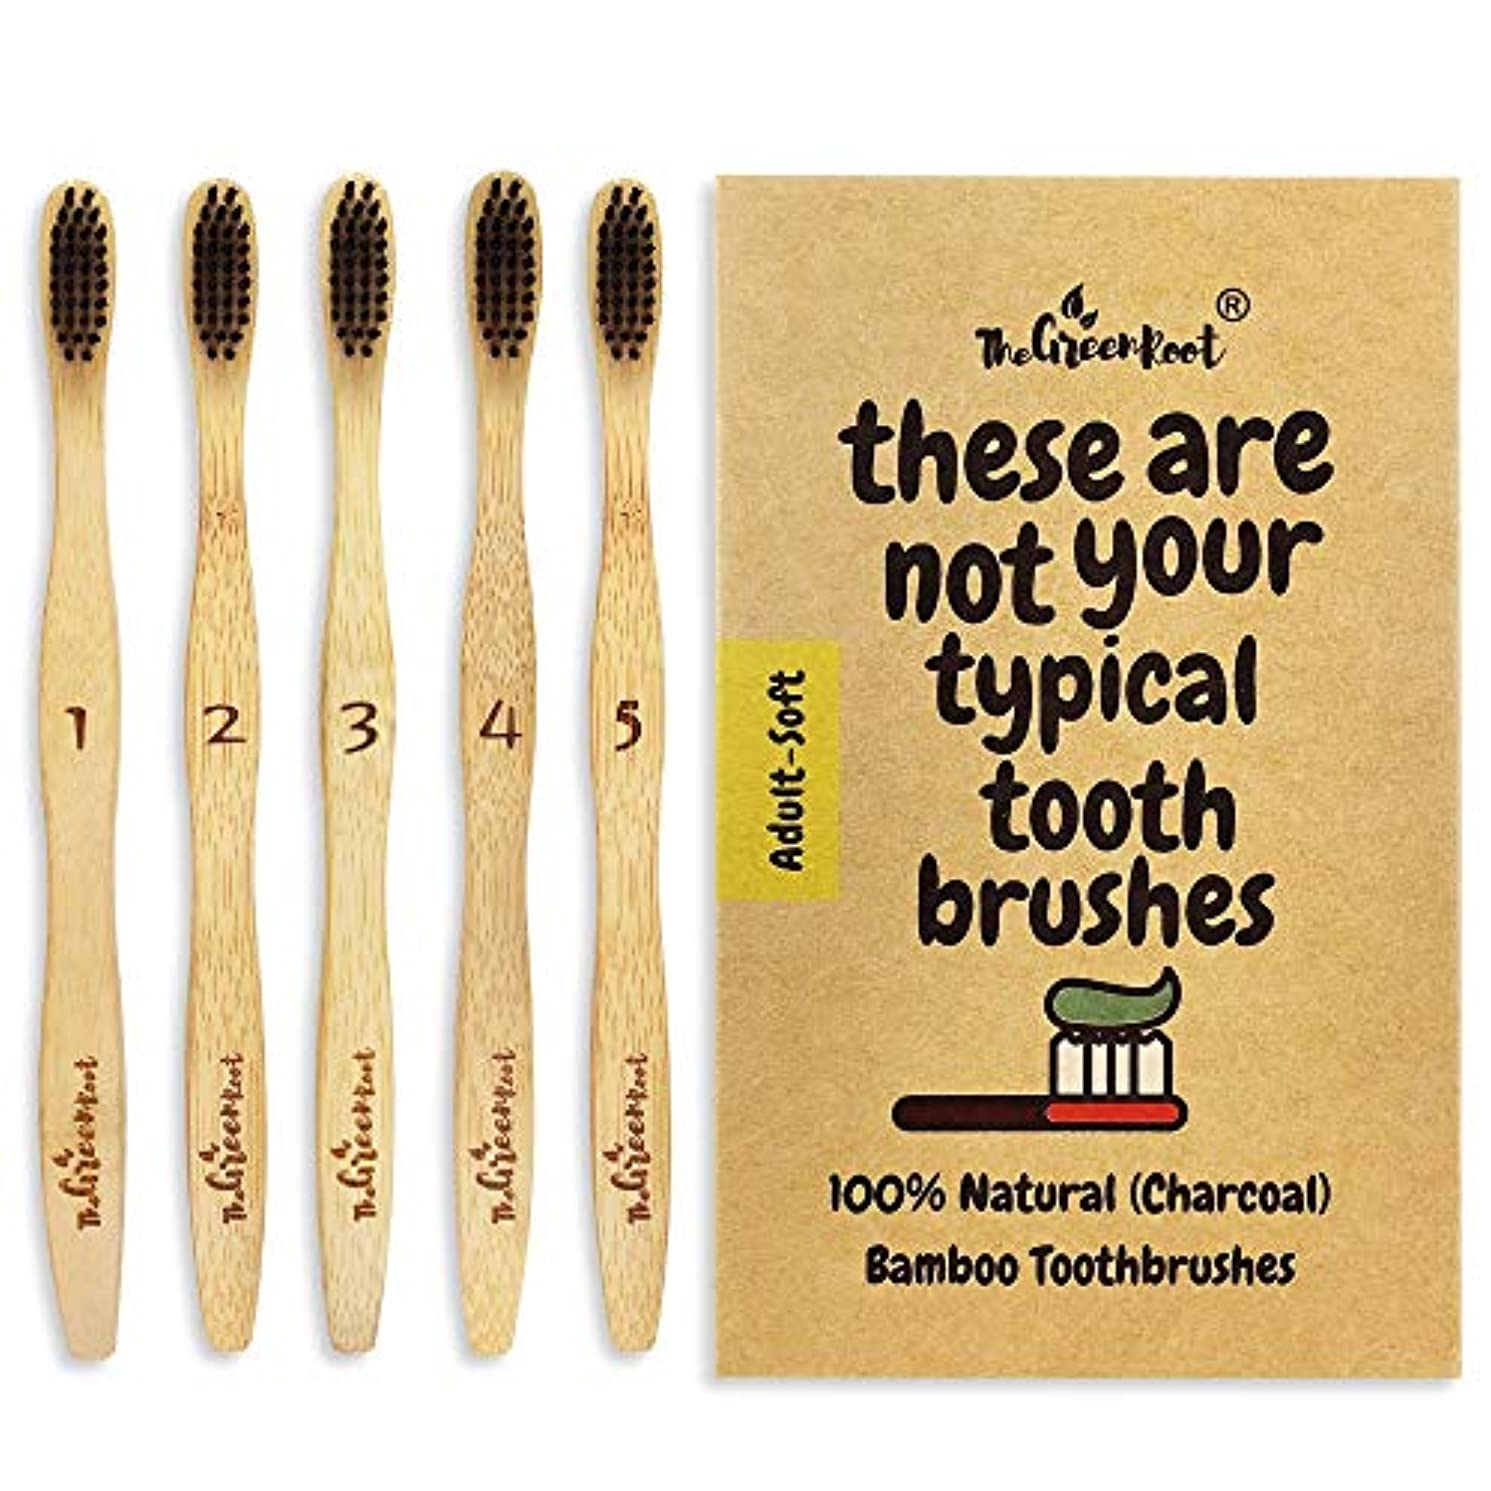 汚れる絶望イヤホンNatural Charcoal Bamboo Toothbrushes (Pack of 5) for Adults with Soft Bio-Based Nylon Bristles - Individually...